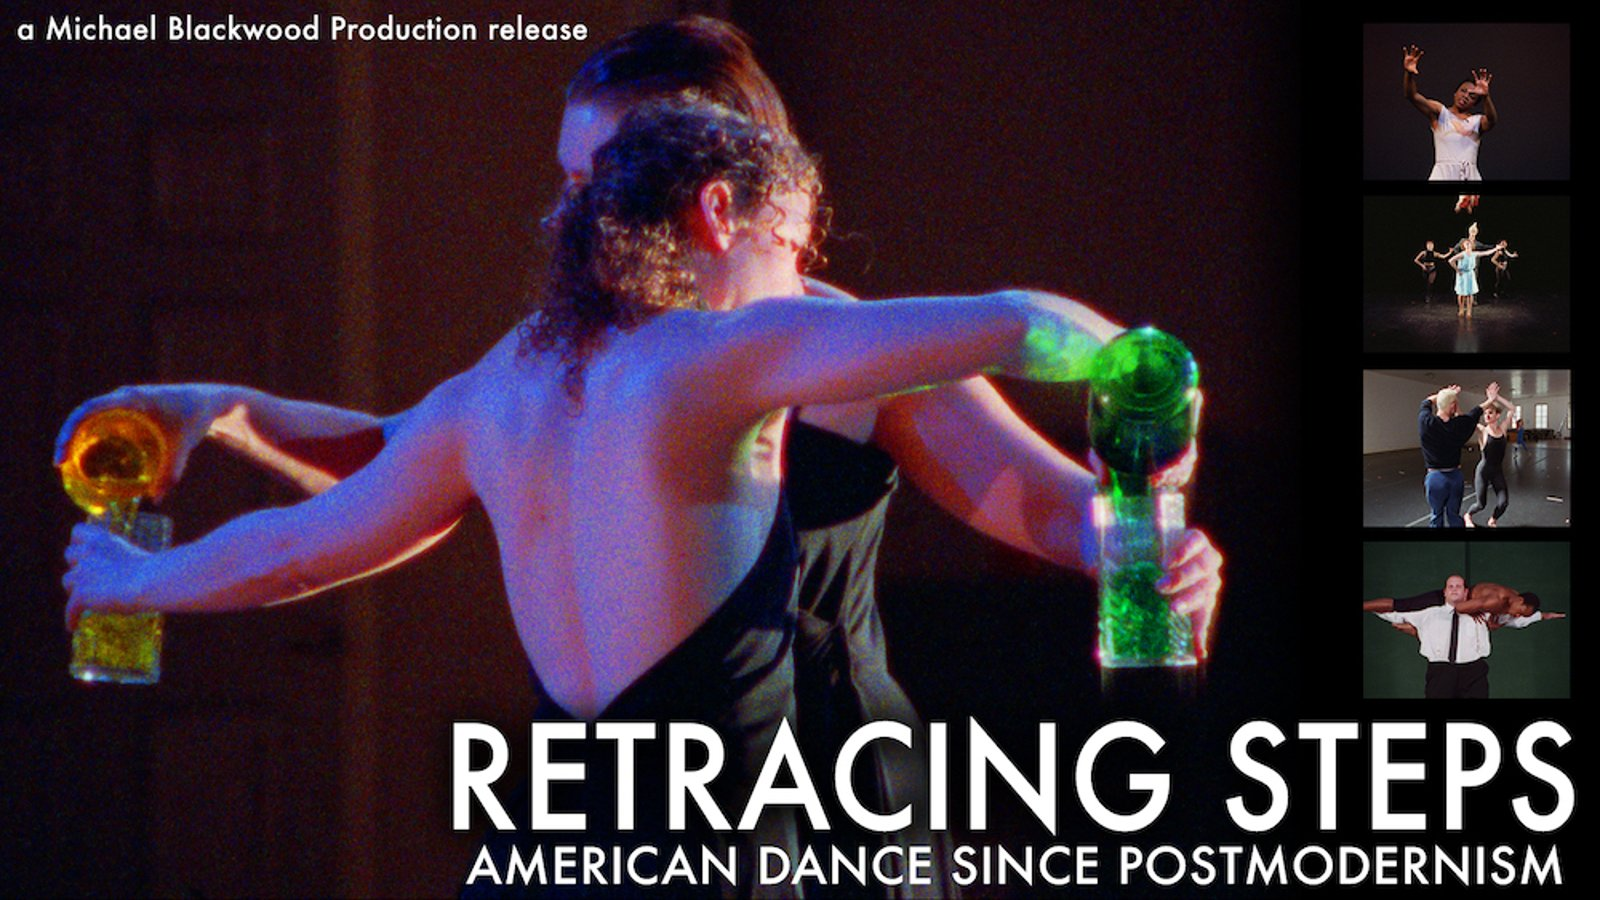 Retracing Steps: American Dance since Postmodernism